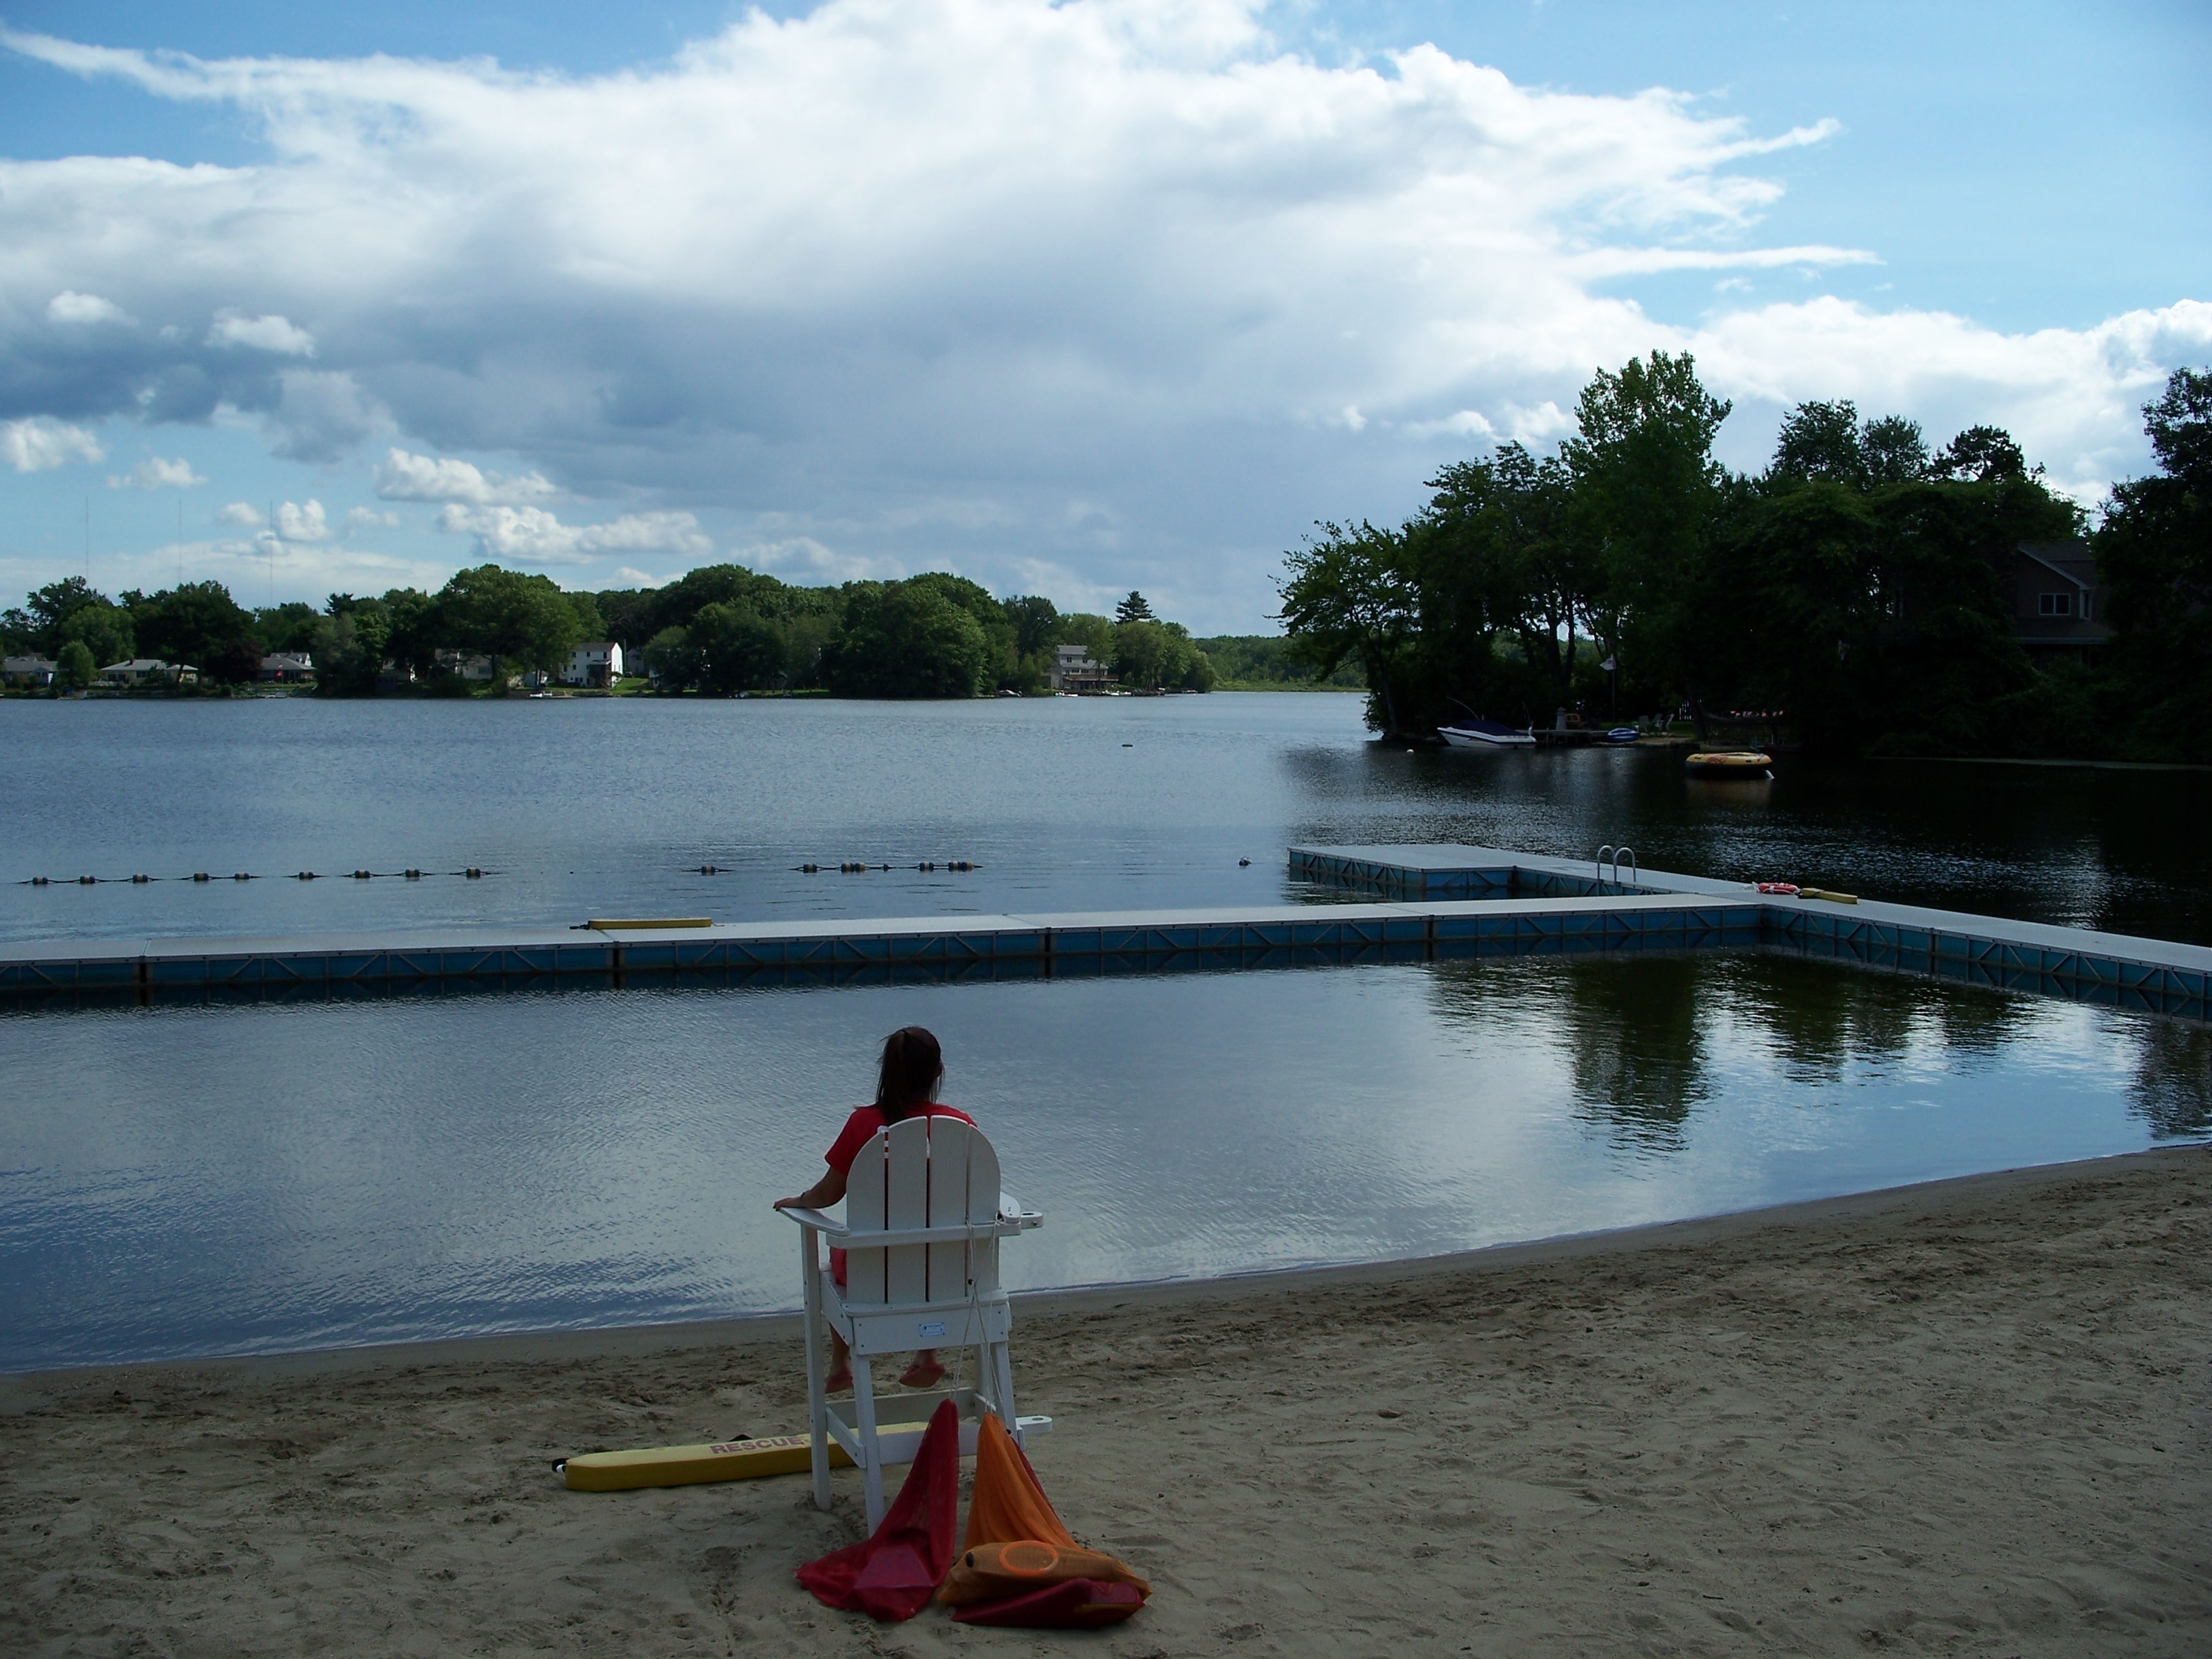 image of a lifeguard on a chair on a small beach facing a calm lake with trees in the background